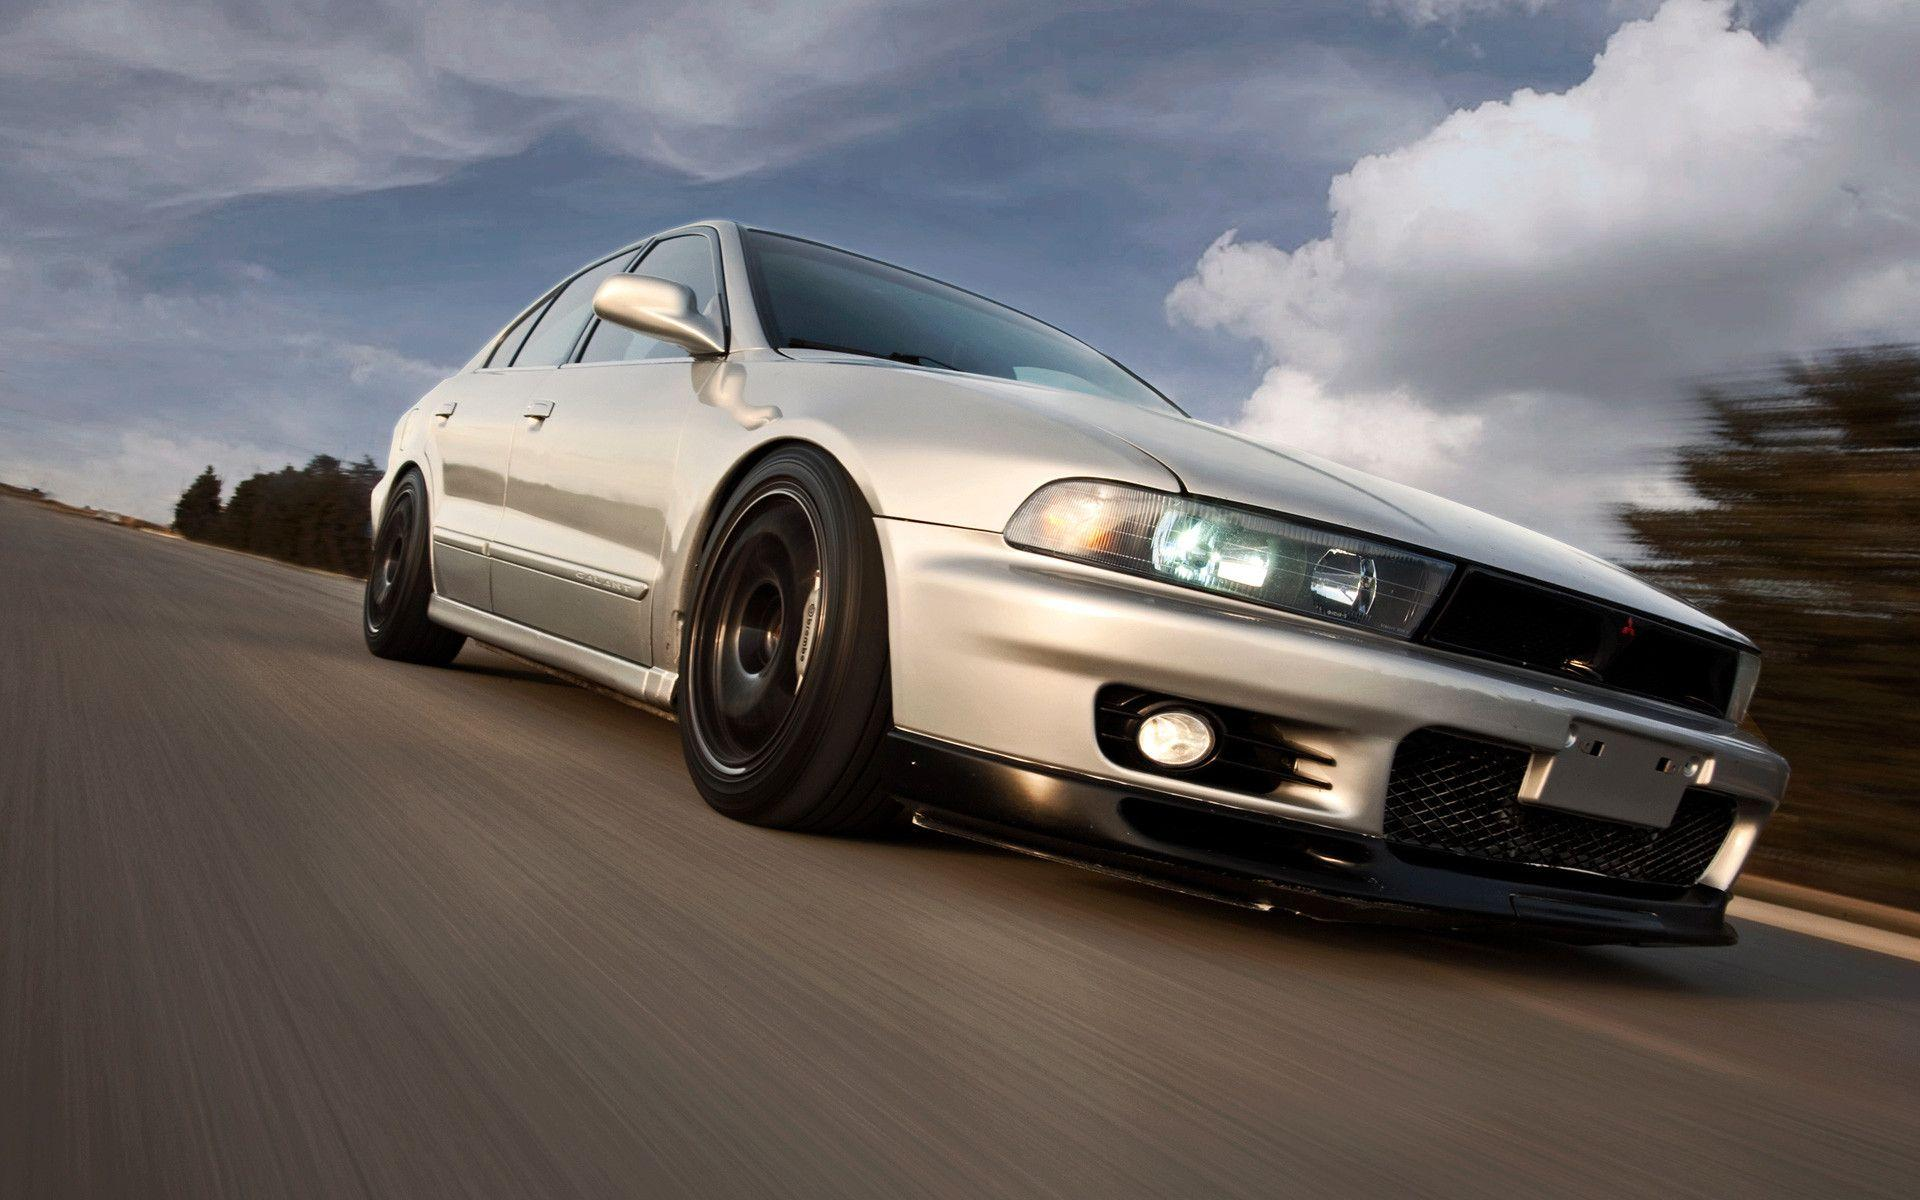 mitsubishi galant wallpapers wallpaper cave mitsubishi galant wallpapers